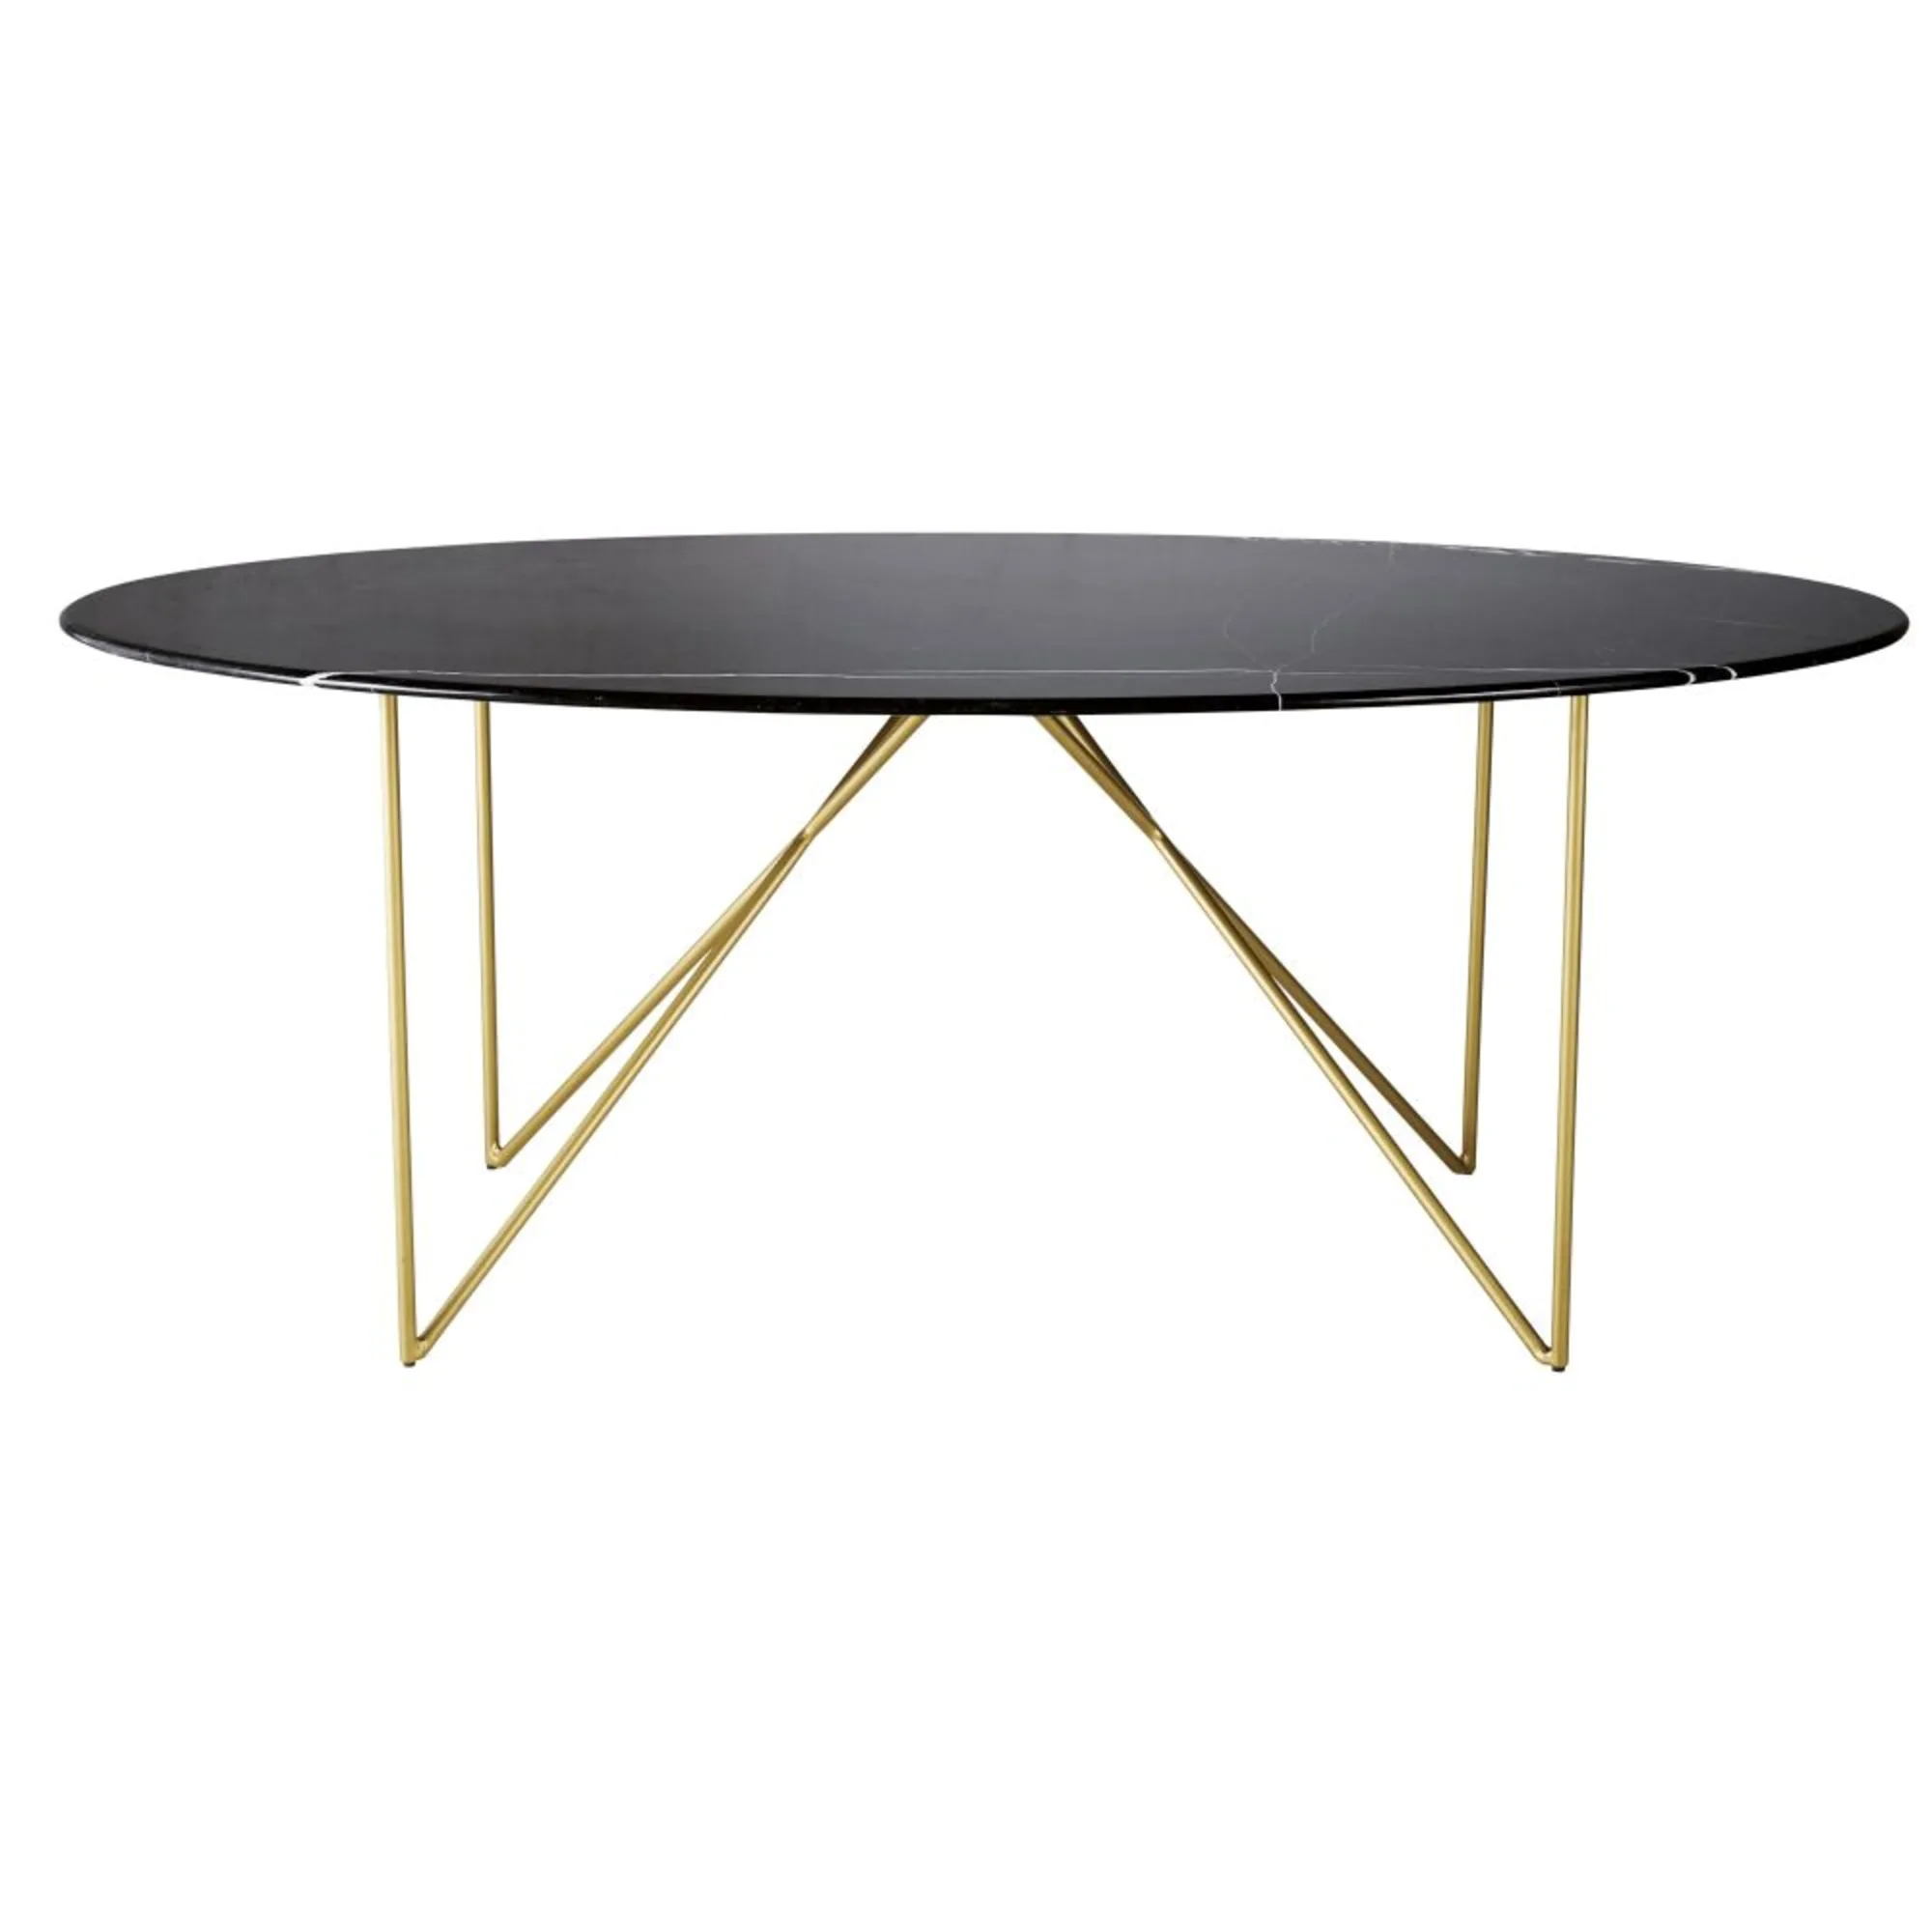 IZMIR.- Black marble and metal dining table for 4/6 people L200